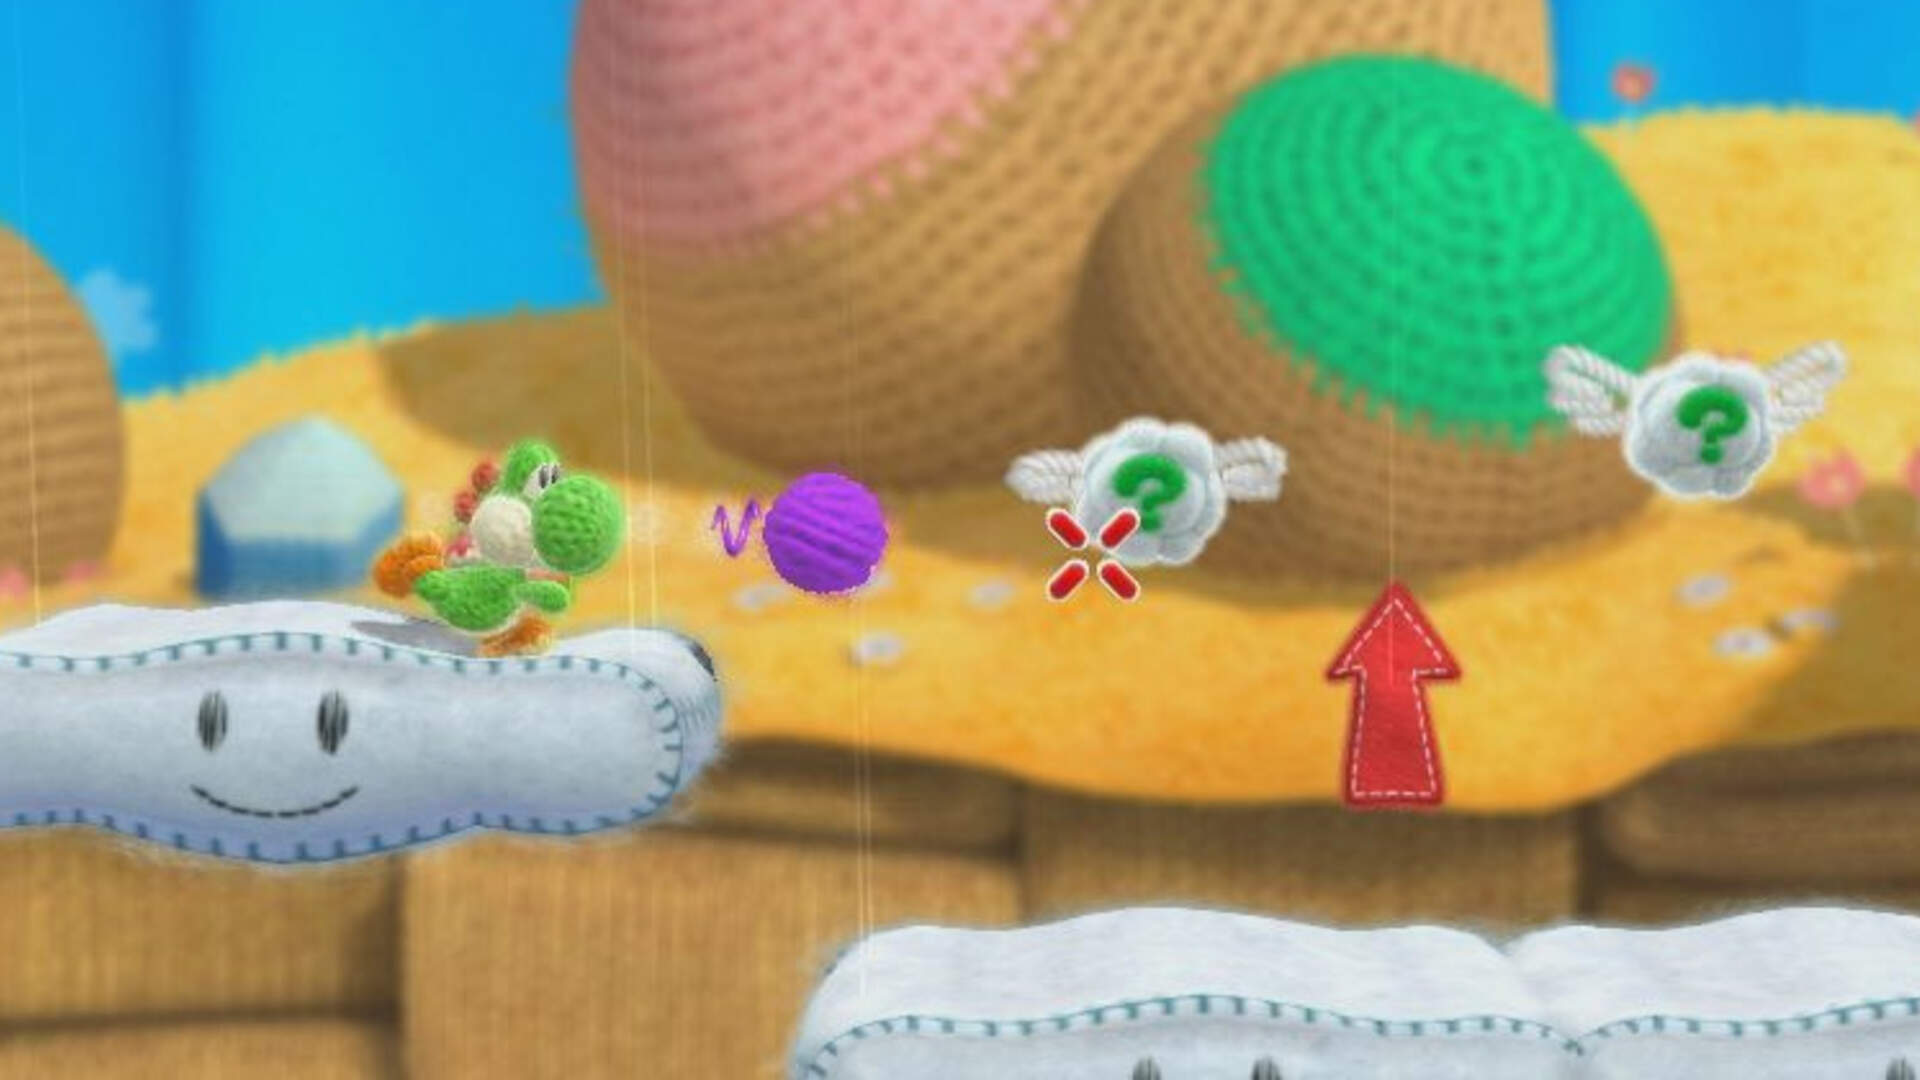 Yoshi's Woolly World Wii U Review: Pull the String